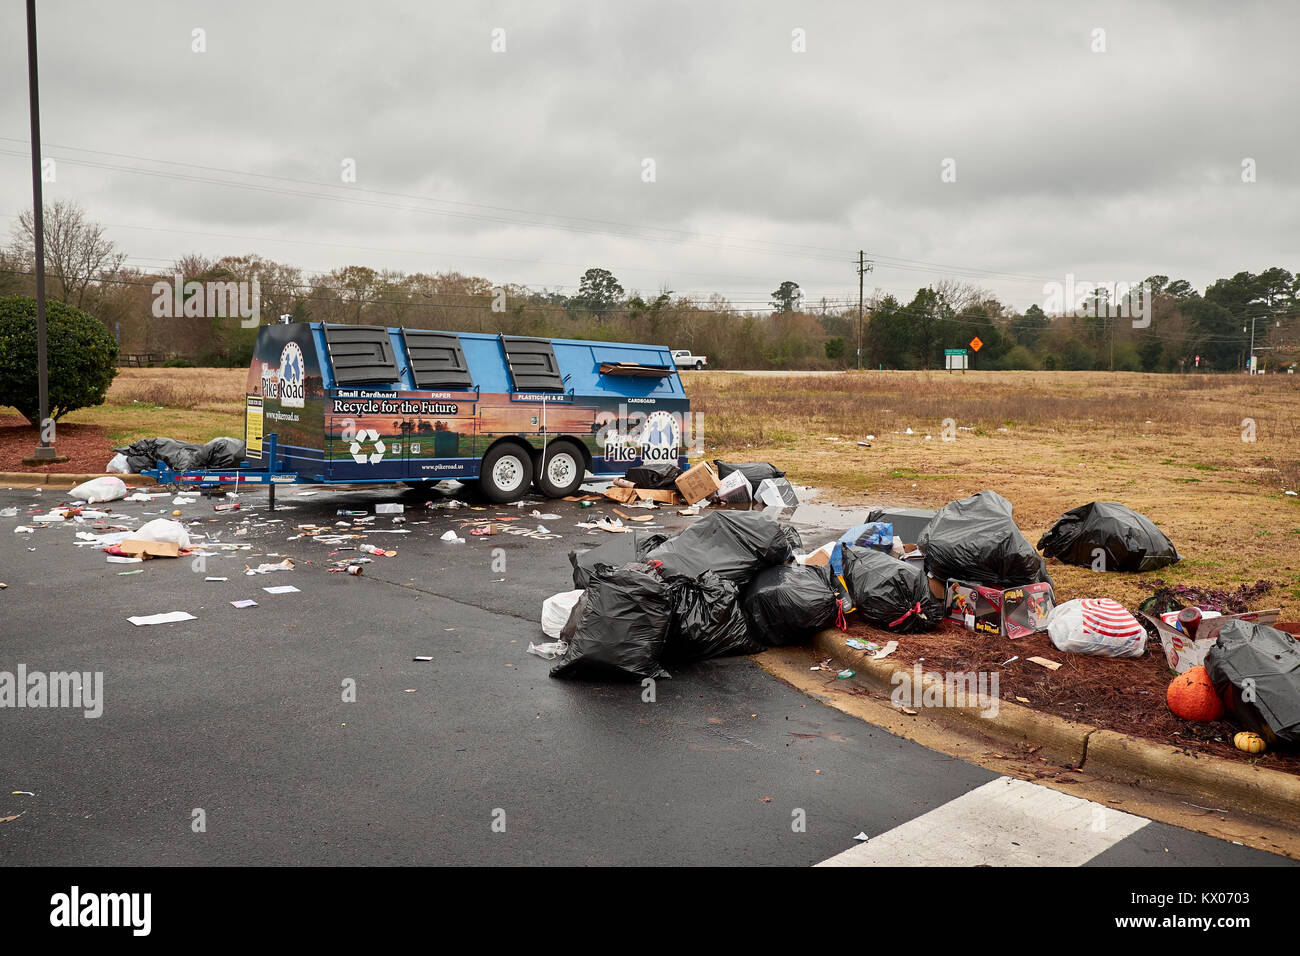 Overflow mess of uncollected plastic, cardboard and paper at recycle or recycling bin waiting for pick up in Pike - Stock Image